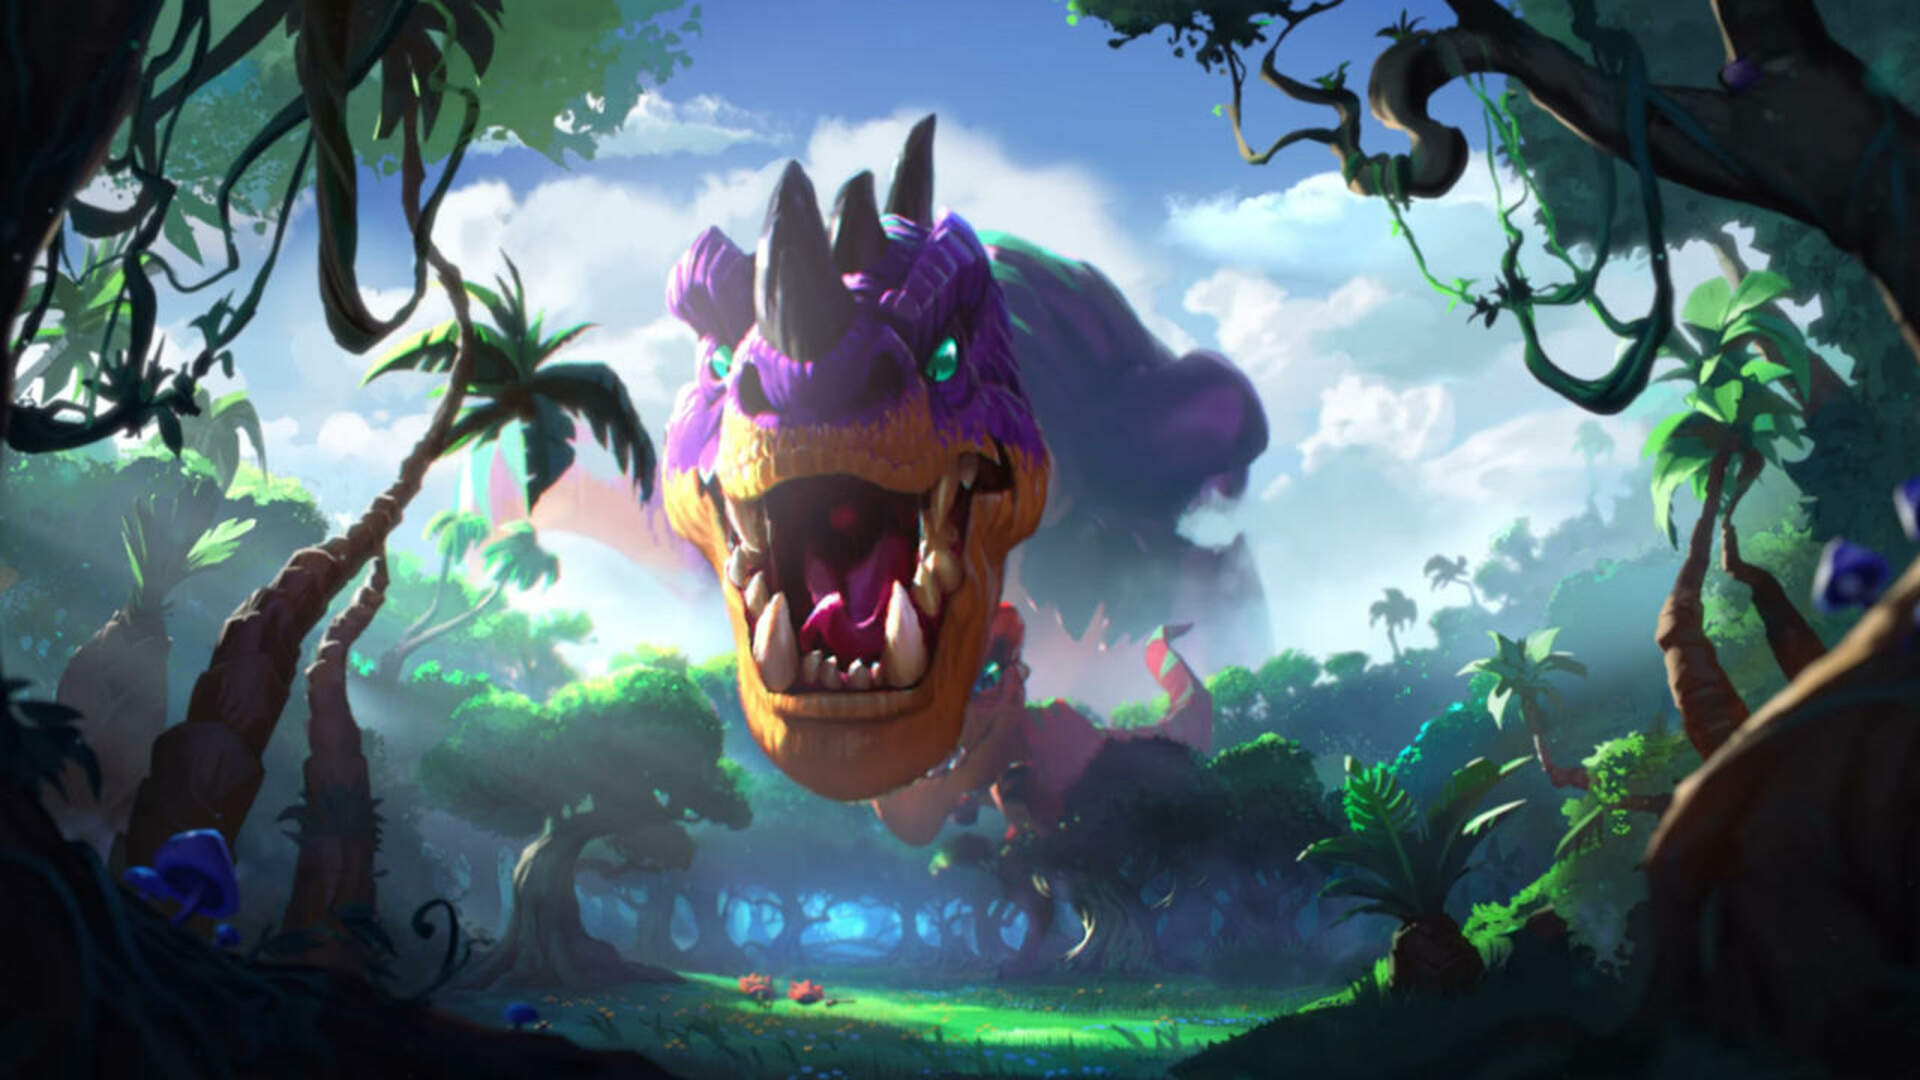 What are Hearthstone's Best Quest Cards? We Rank them for Competitive Play